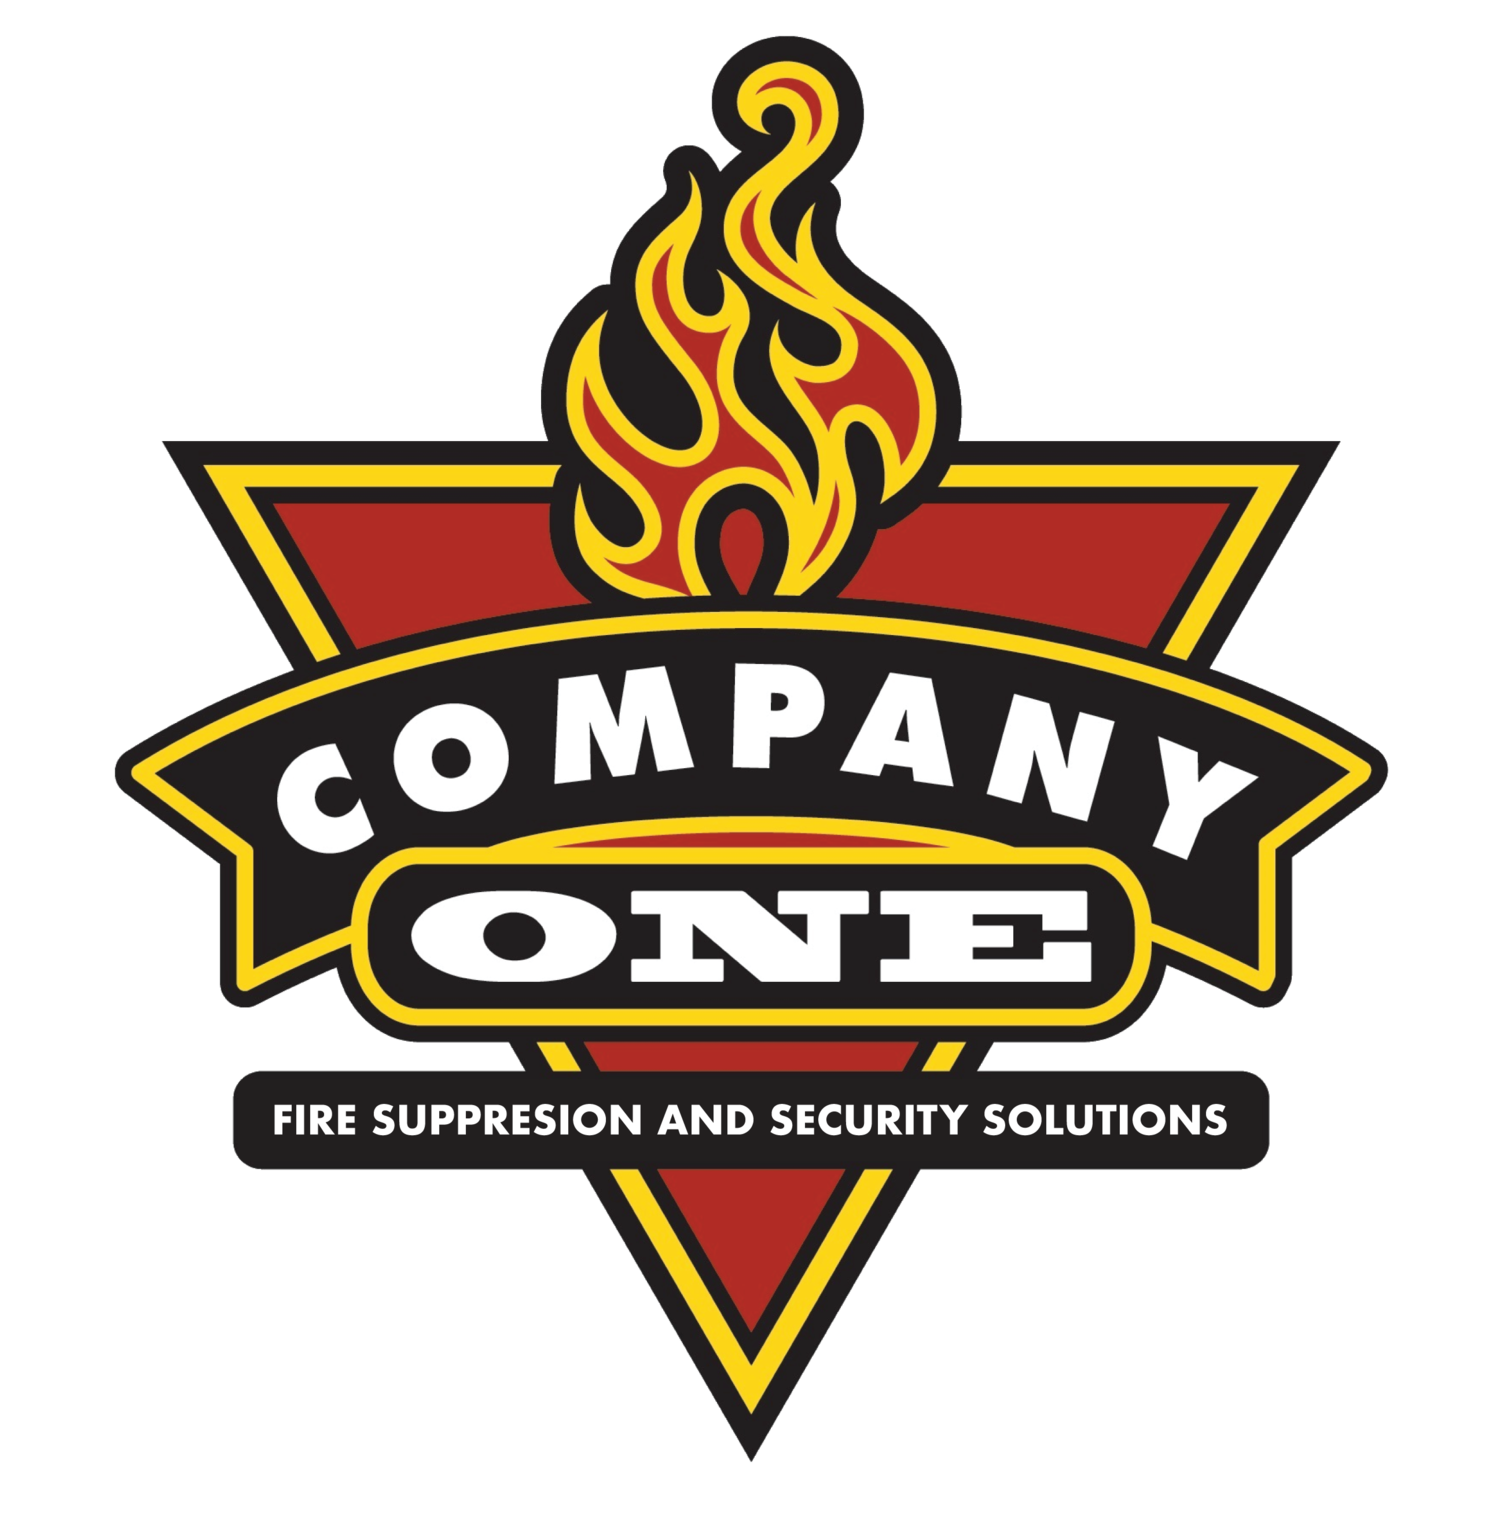 Company One Fire Suppression and Security Solutions